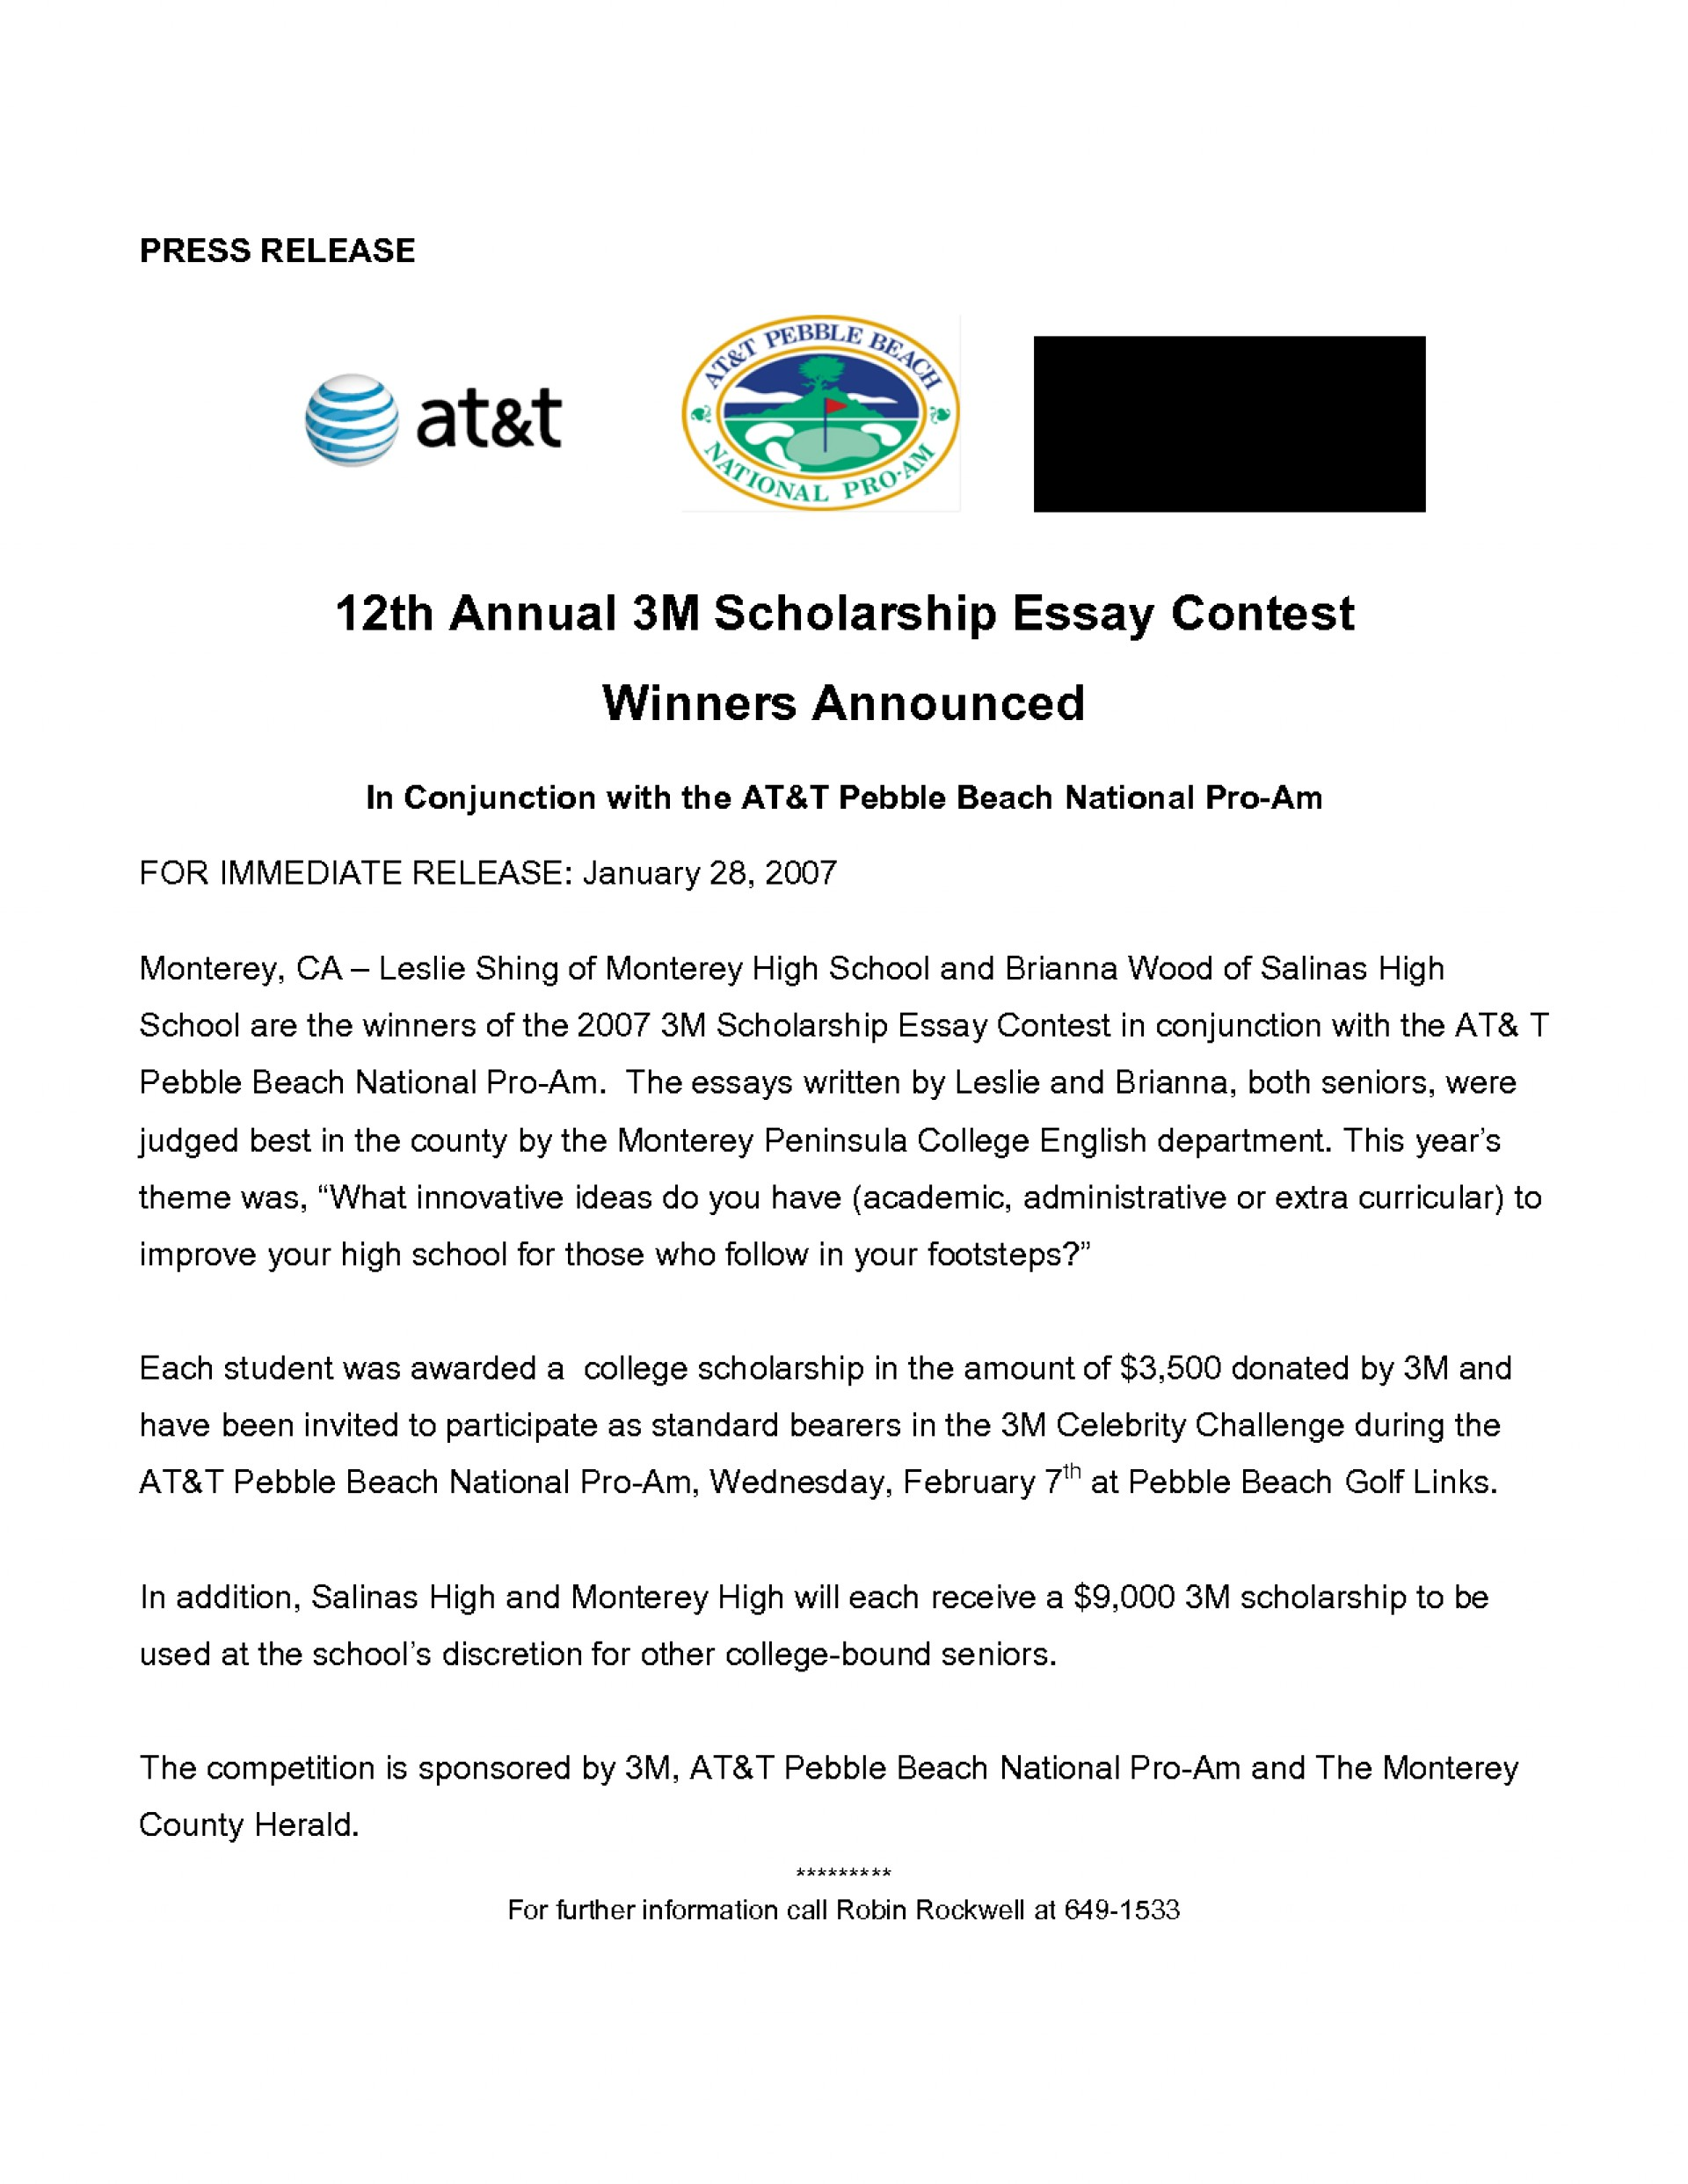 002 Essay Scholarships For High School Students Example Scholarship Application Help Contests Juniors 3 No Incredible Free Writing Class Of 2020 1920